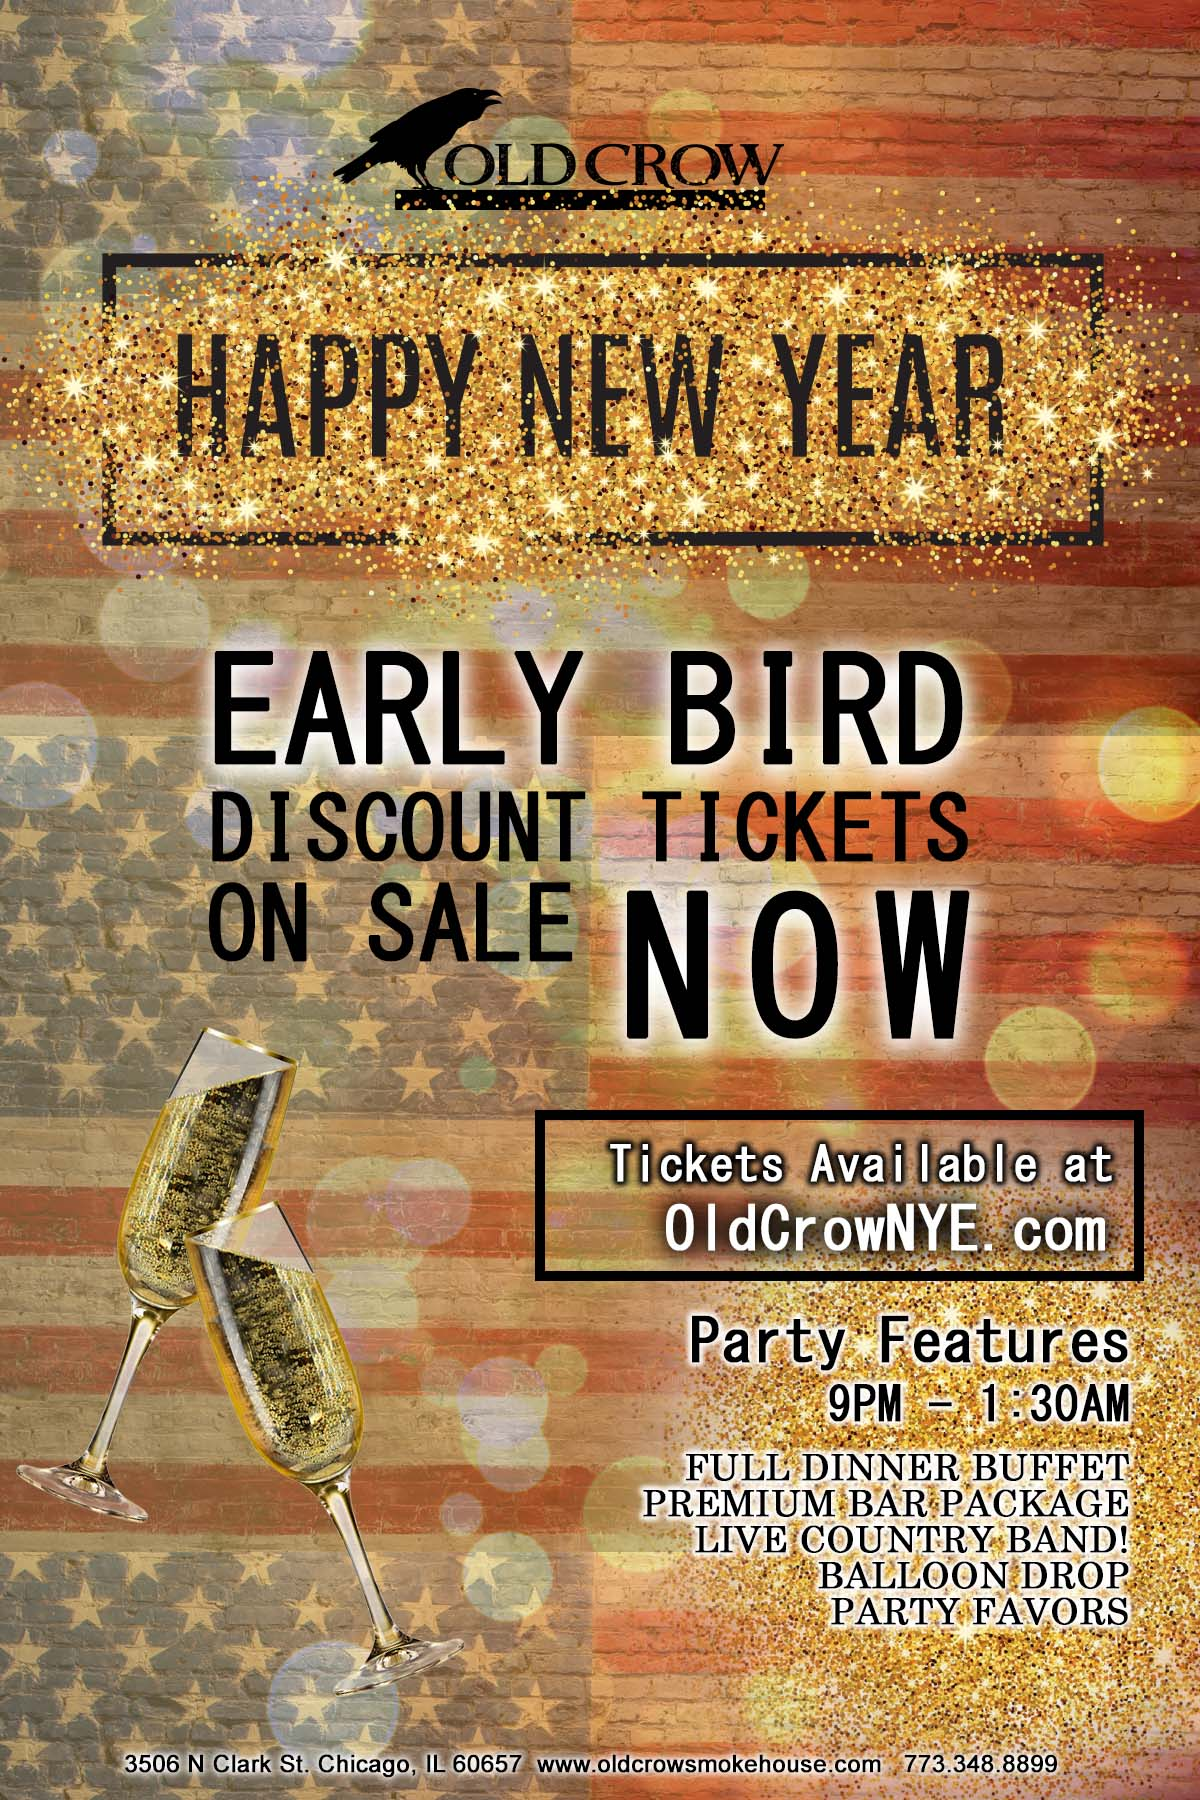 Old Crow Smokehouse Wrigleyville New Year's Eve Party - Tickets include a Full Dinner Buffet, Premium Bar Package from 9pm-1:30am, Live Country Band, Balloon Drop and More!